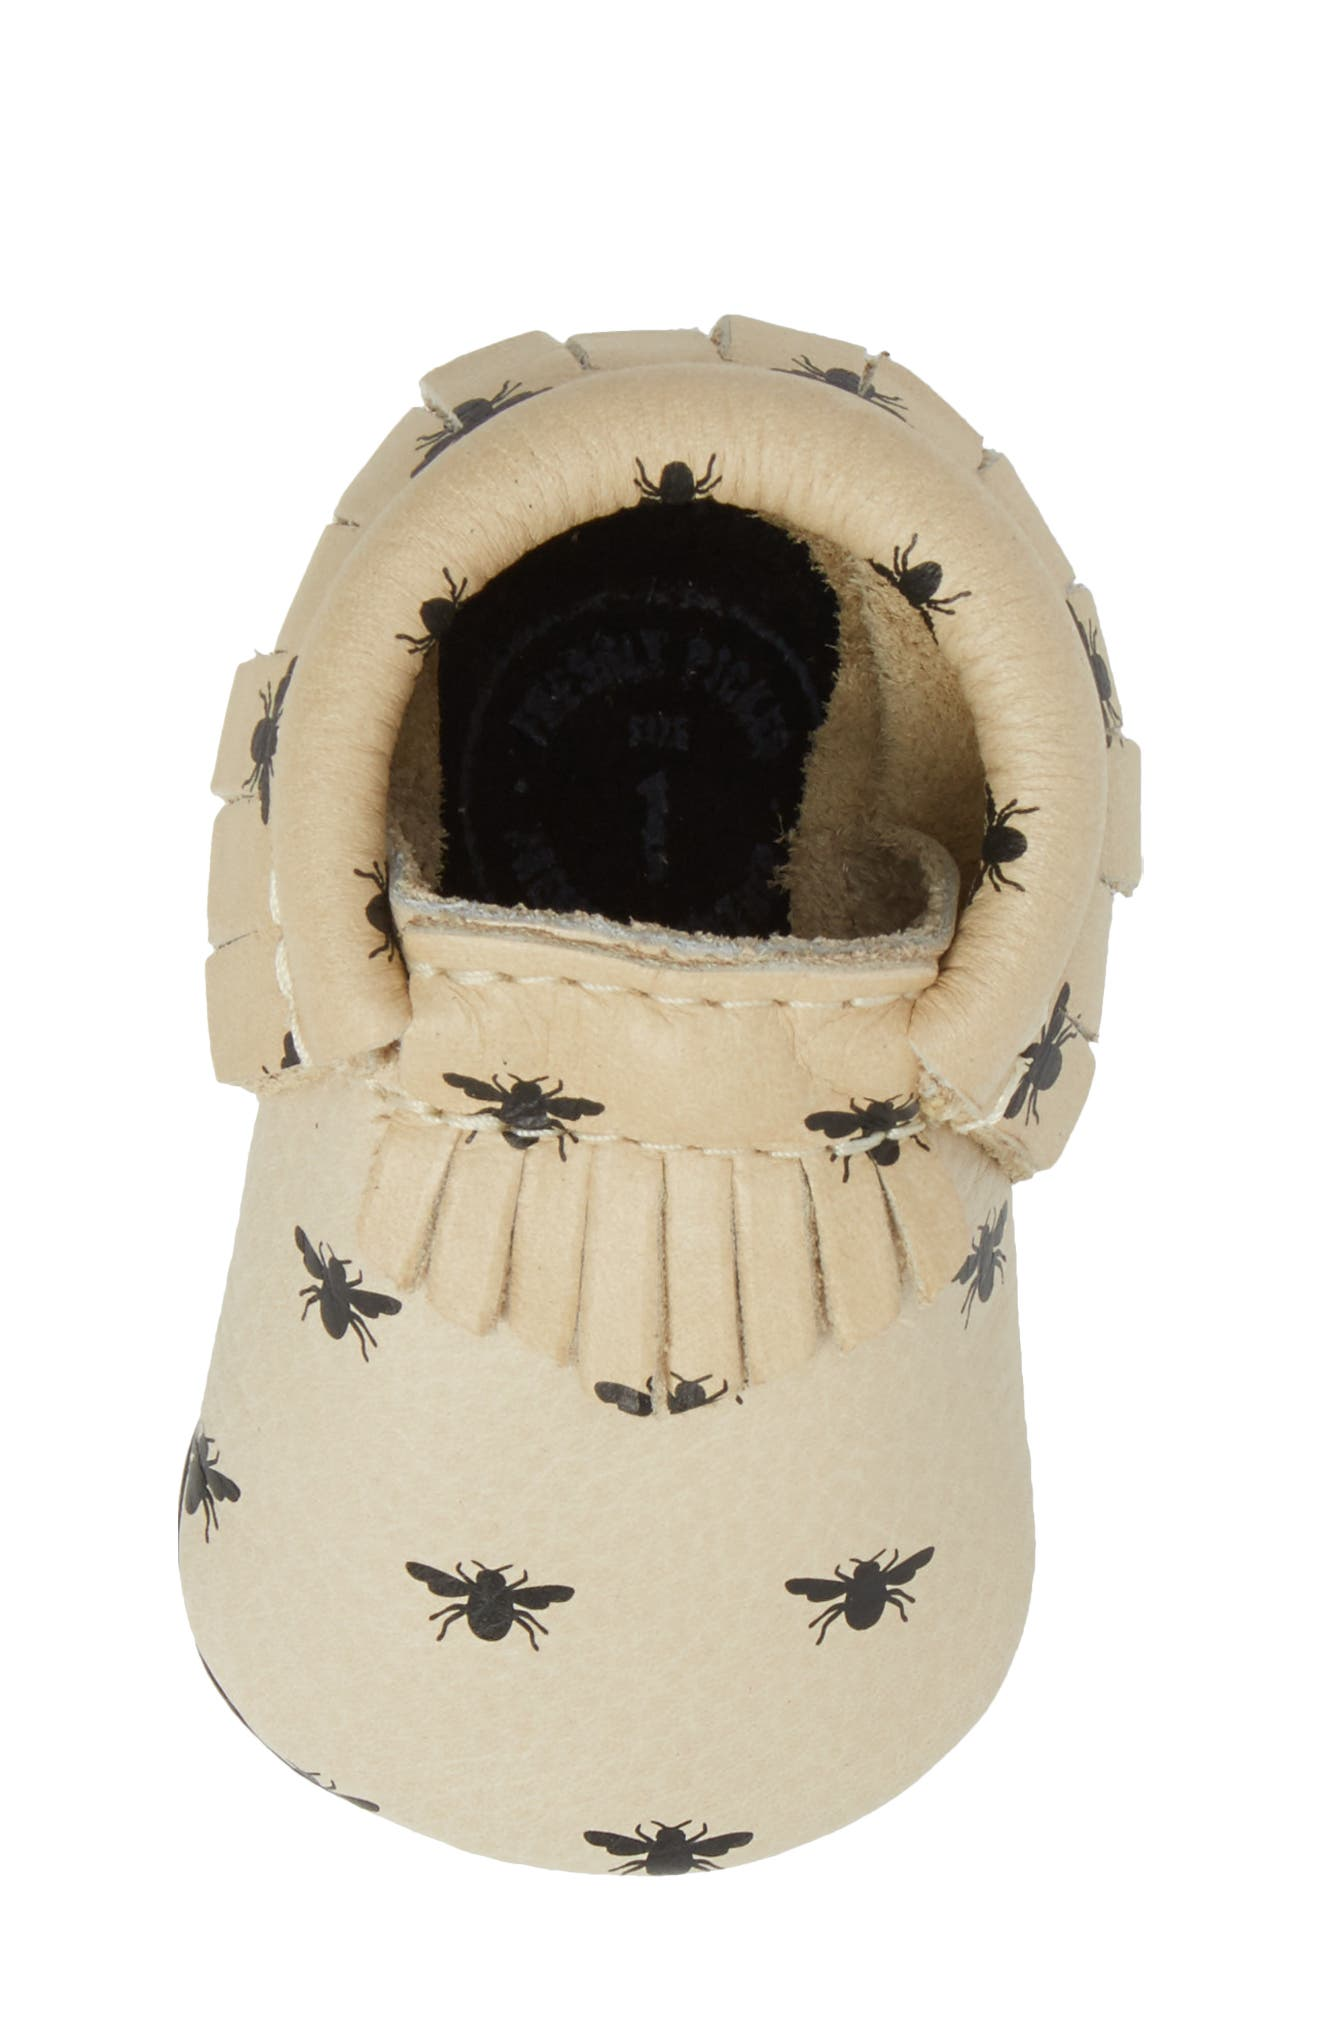 Honeybee Print Moccasin,                             Alternate thumbnail 5, color,                             250